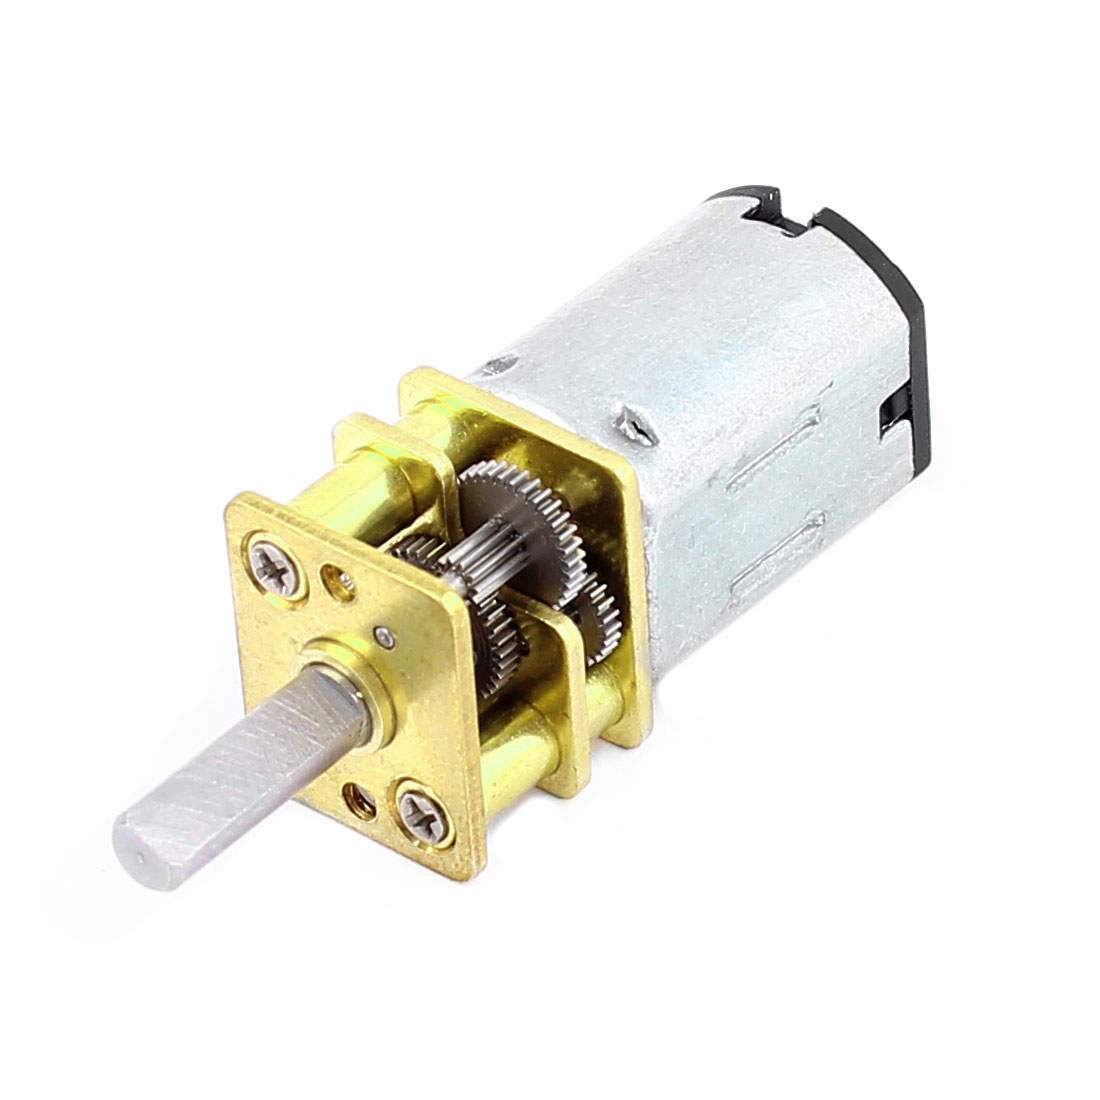 DC 12V 60RPM High Torque 3mm Shaft Dia Low Speed Solder Gear Box Motor